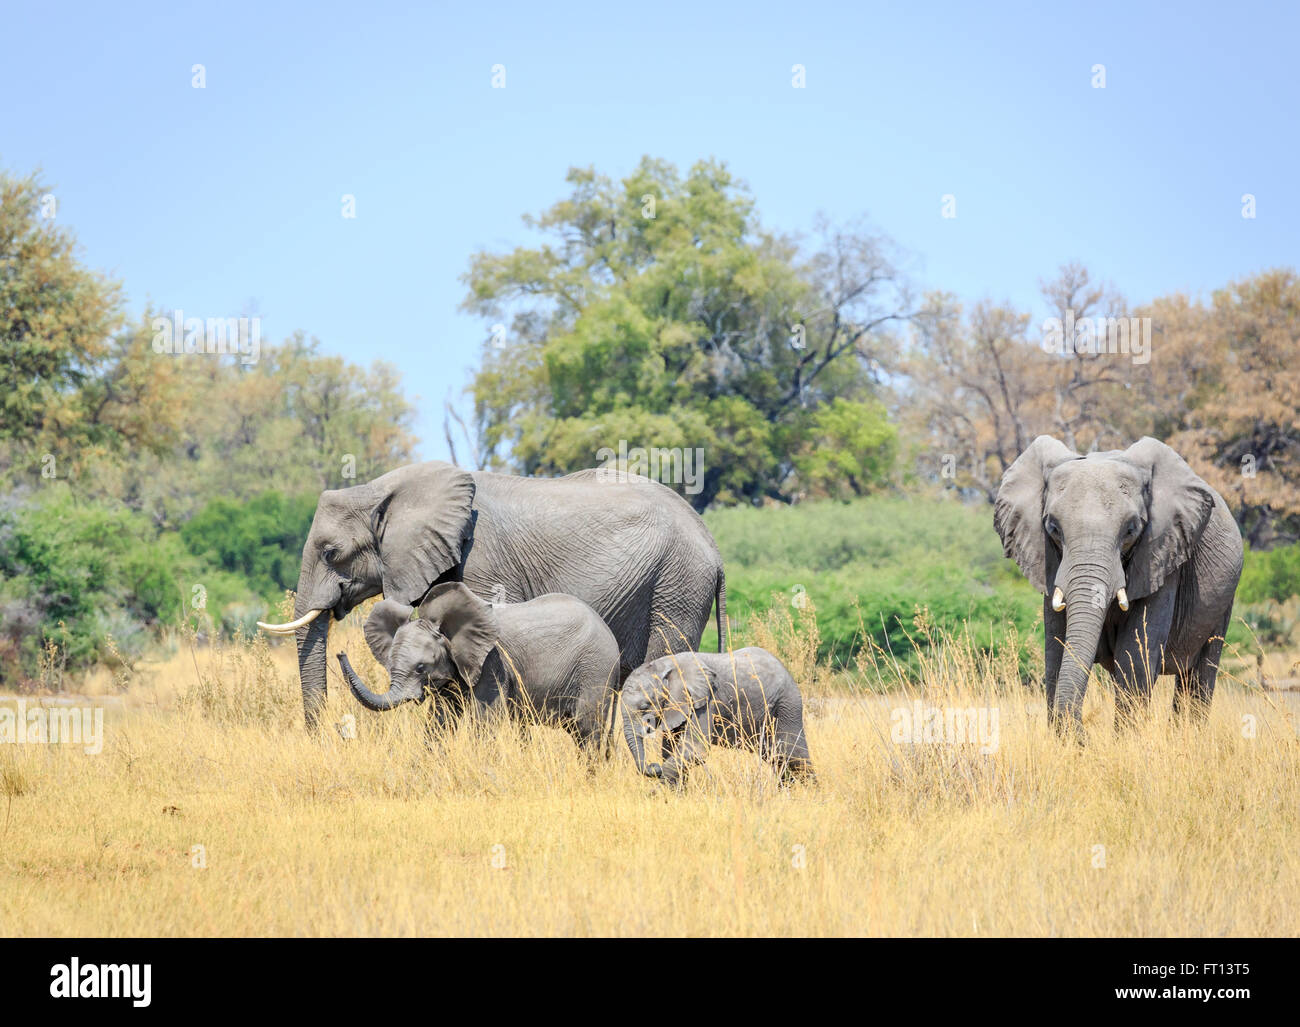 African bush elephant (Loxodonta africana) family grazing, with baby and juvenile elephants in savannah, Sandibe - Stock Image